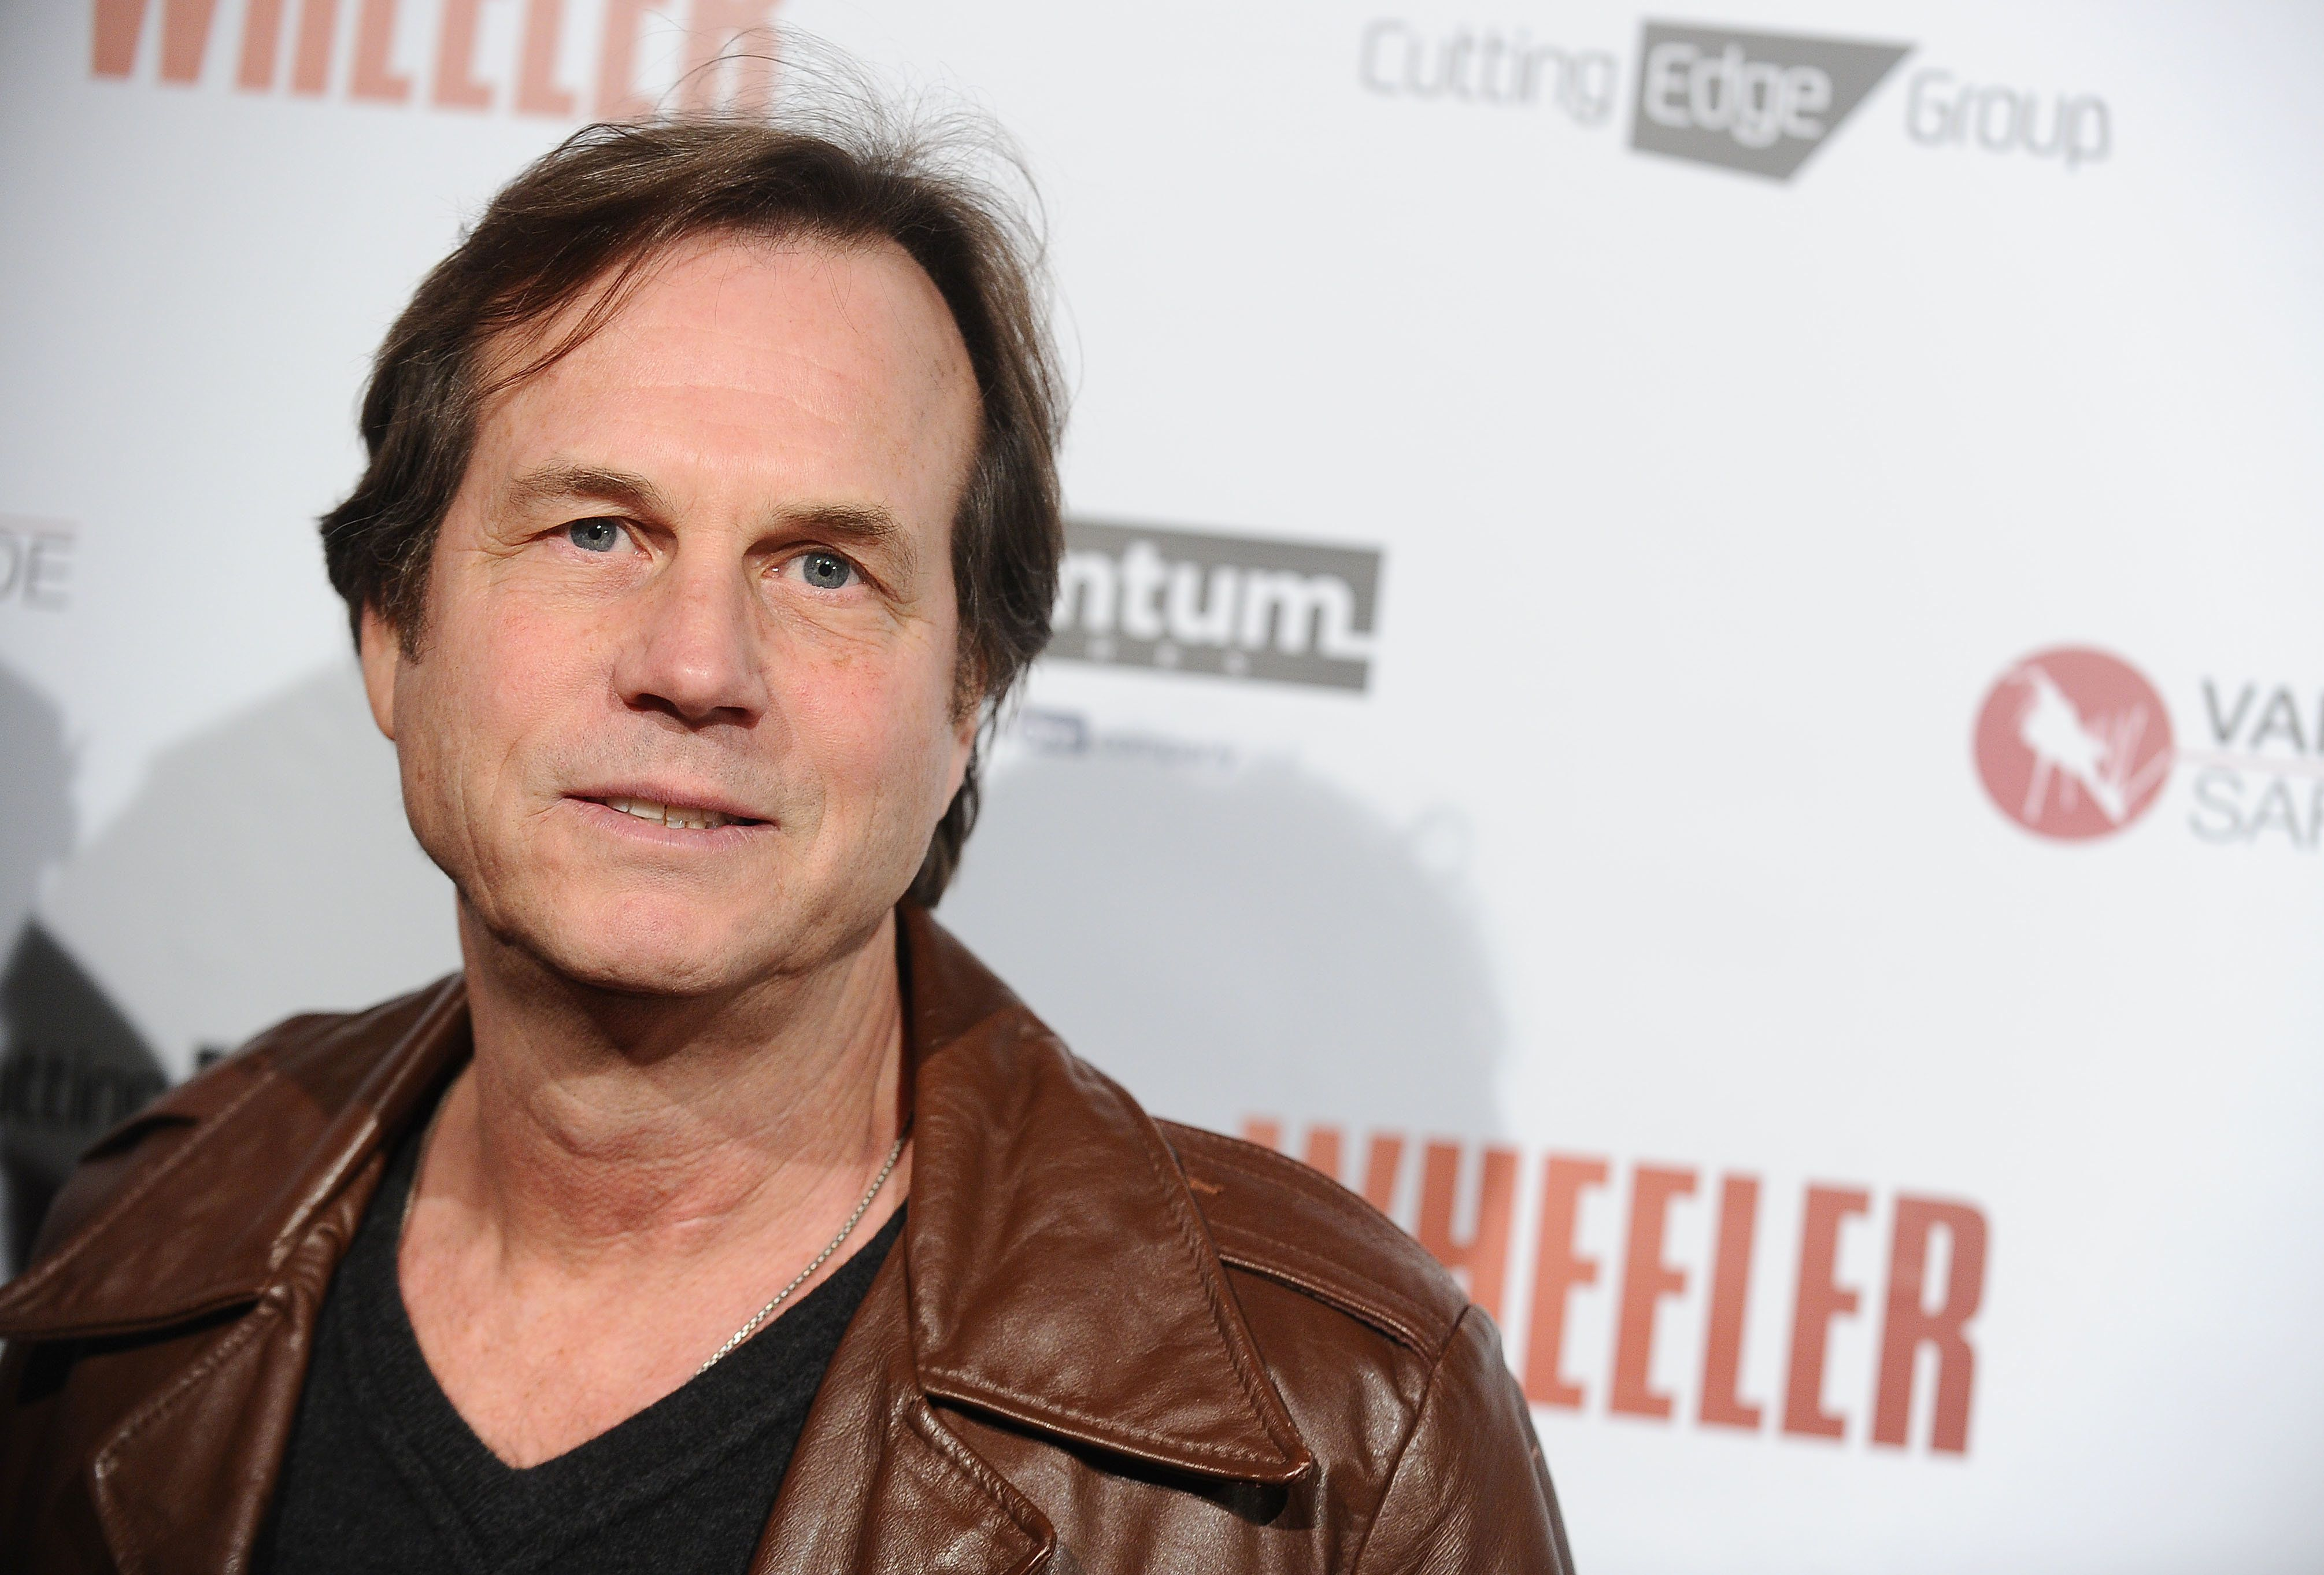 LOS ANGELES, CA - JANUARY 30:  Actor Bill Paxton attends the premiere of 'Wheeler' at the Vista Theatre on January 30, 2017 in Los Angeles, California.  (Photo by Jason LaVeris/FilmMagic)